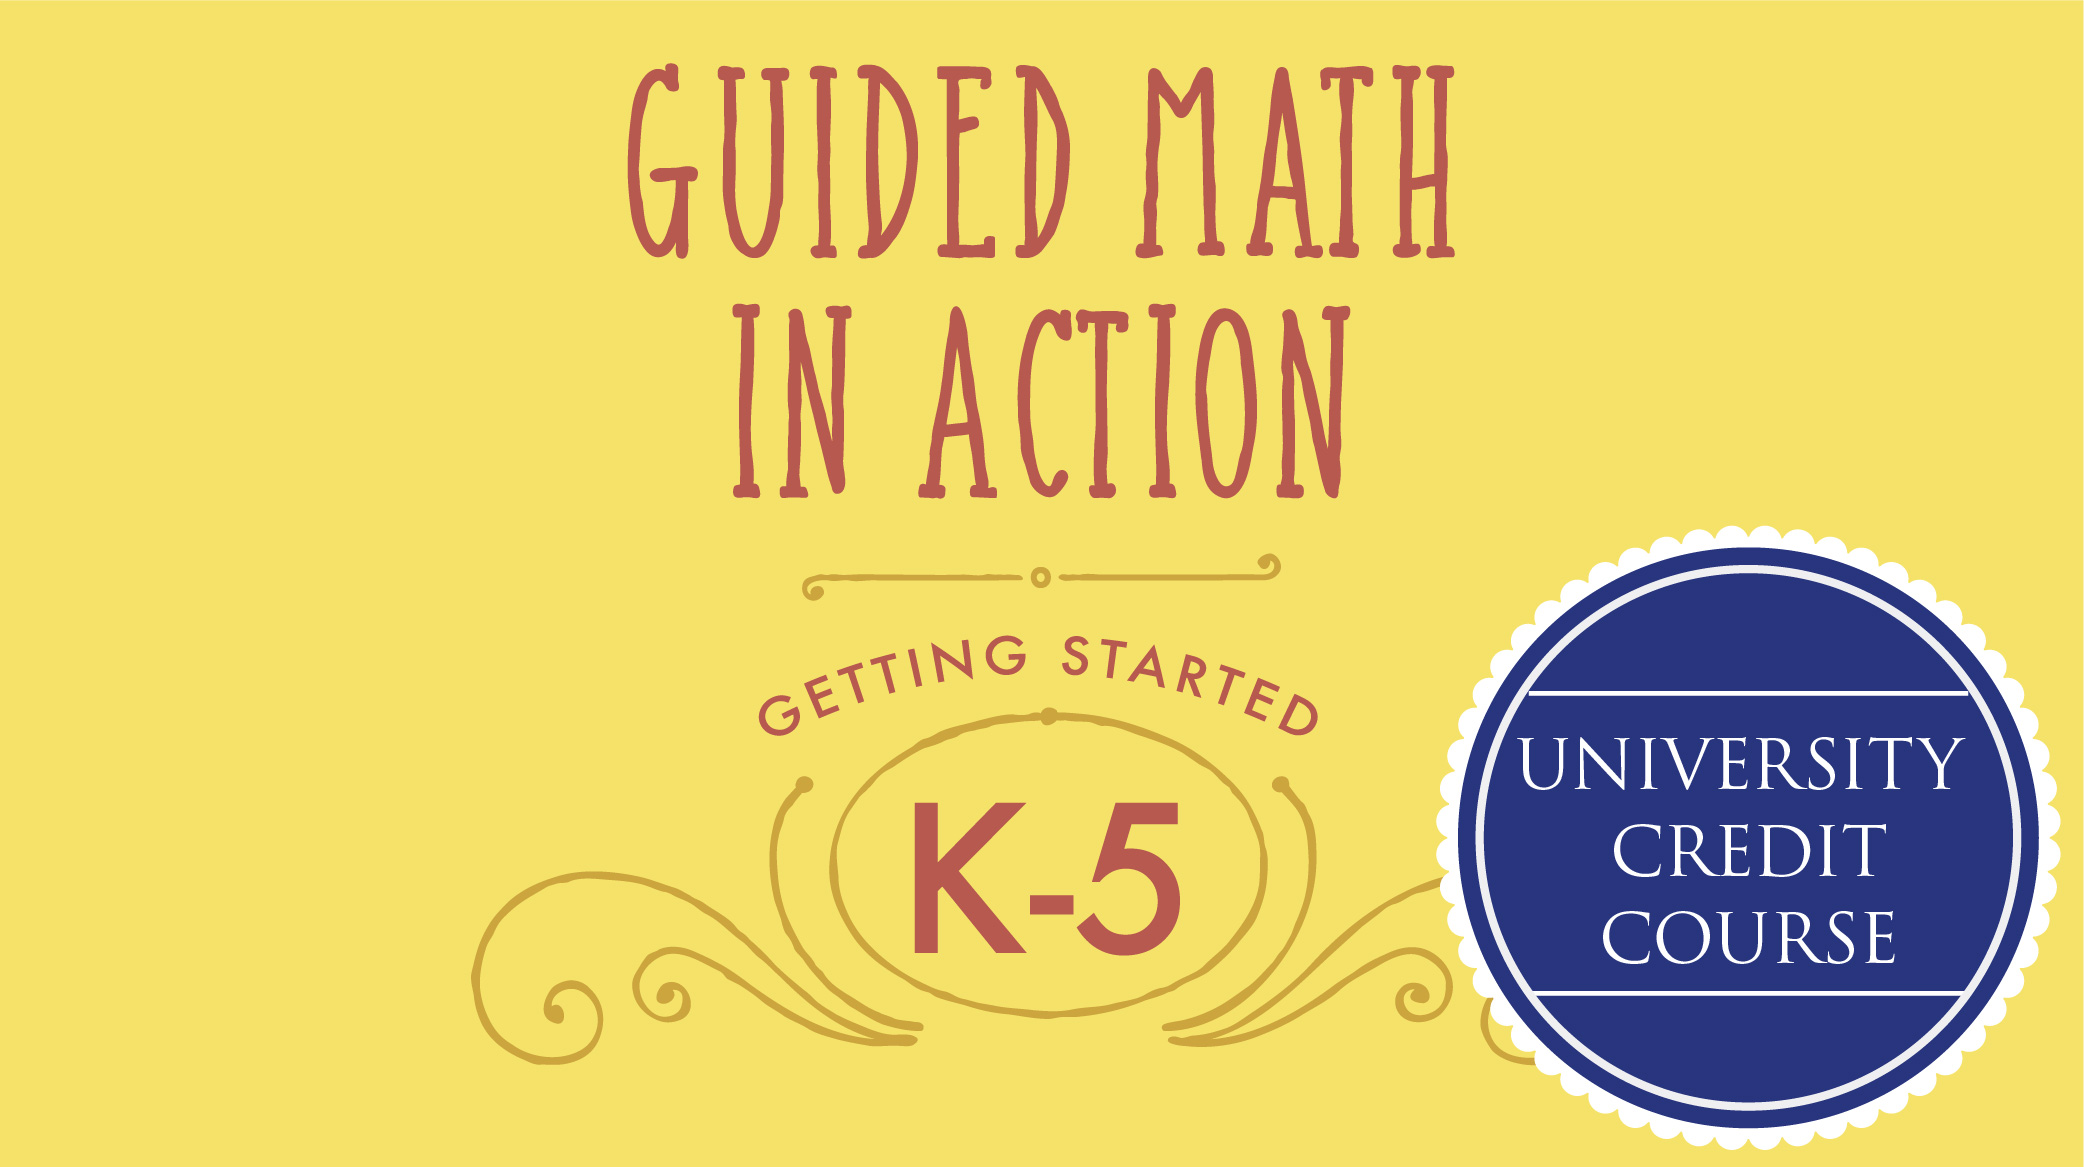 Class-title-cards_Guided math in action K-5 UC